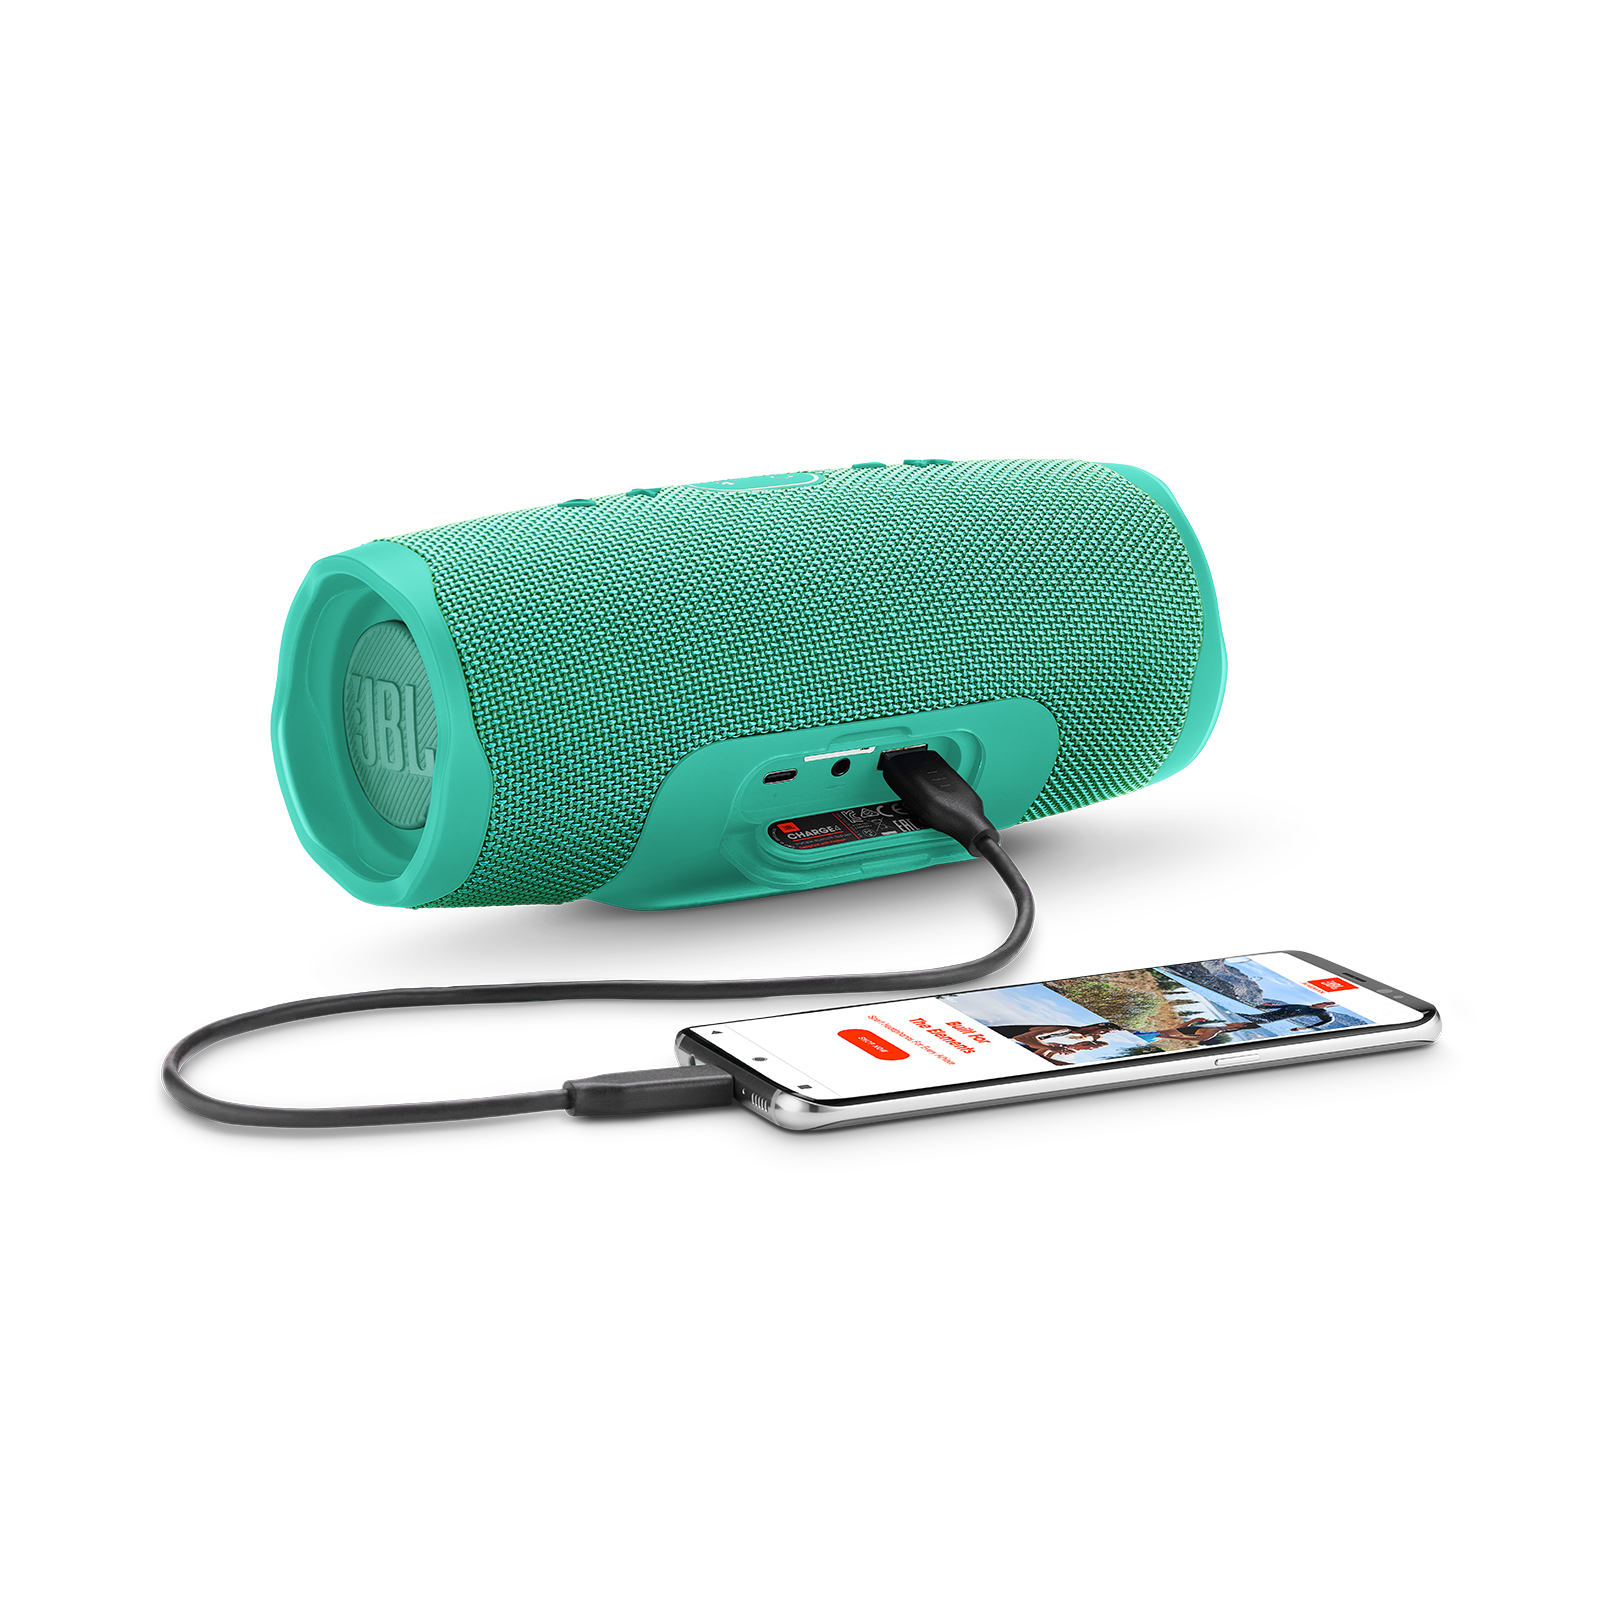 JBL Charge 4 - Teal - Portable Bluetooth speaker - Detailshot 4